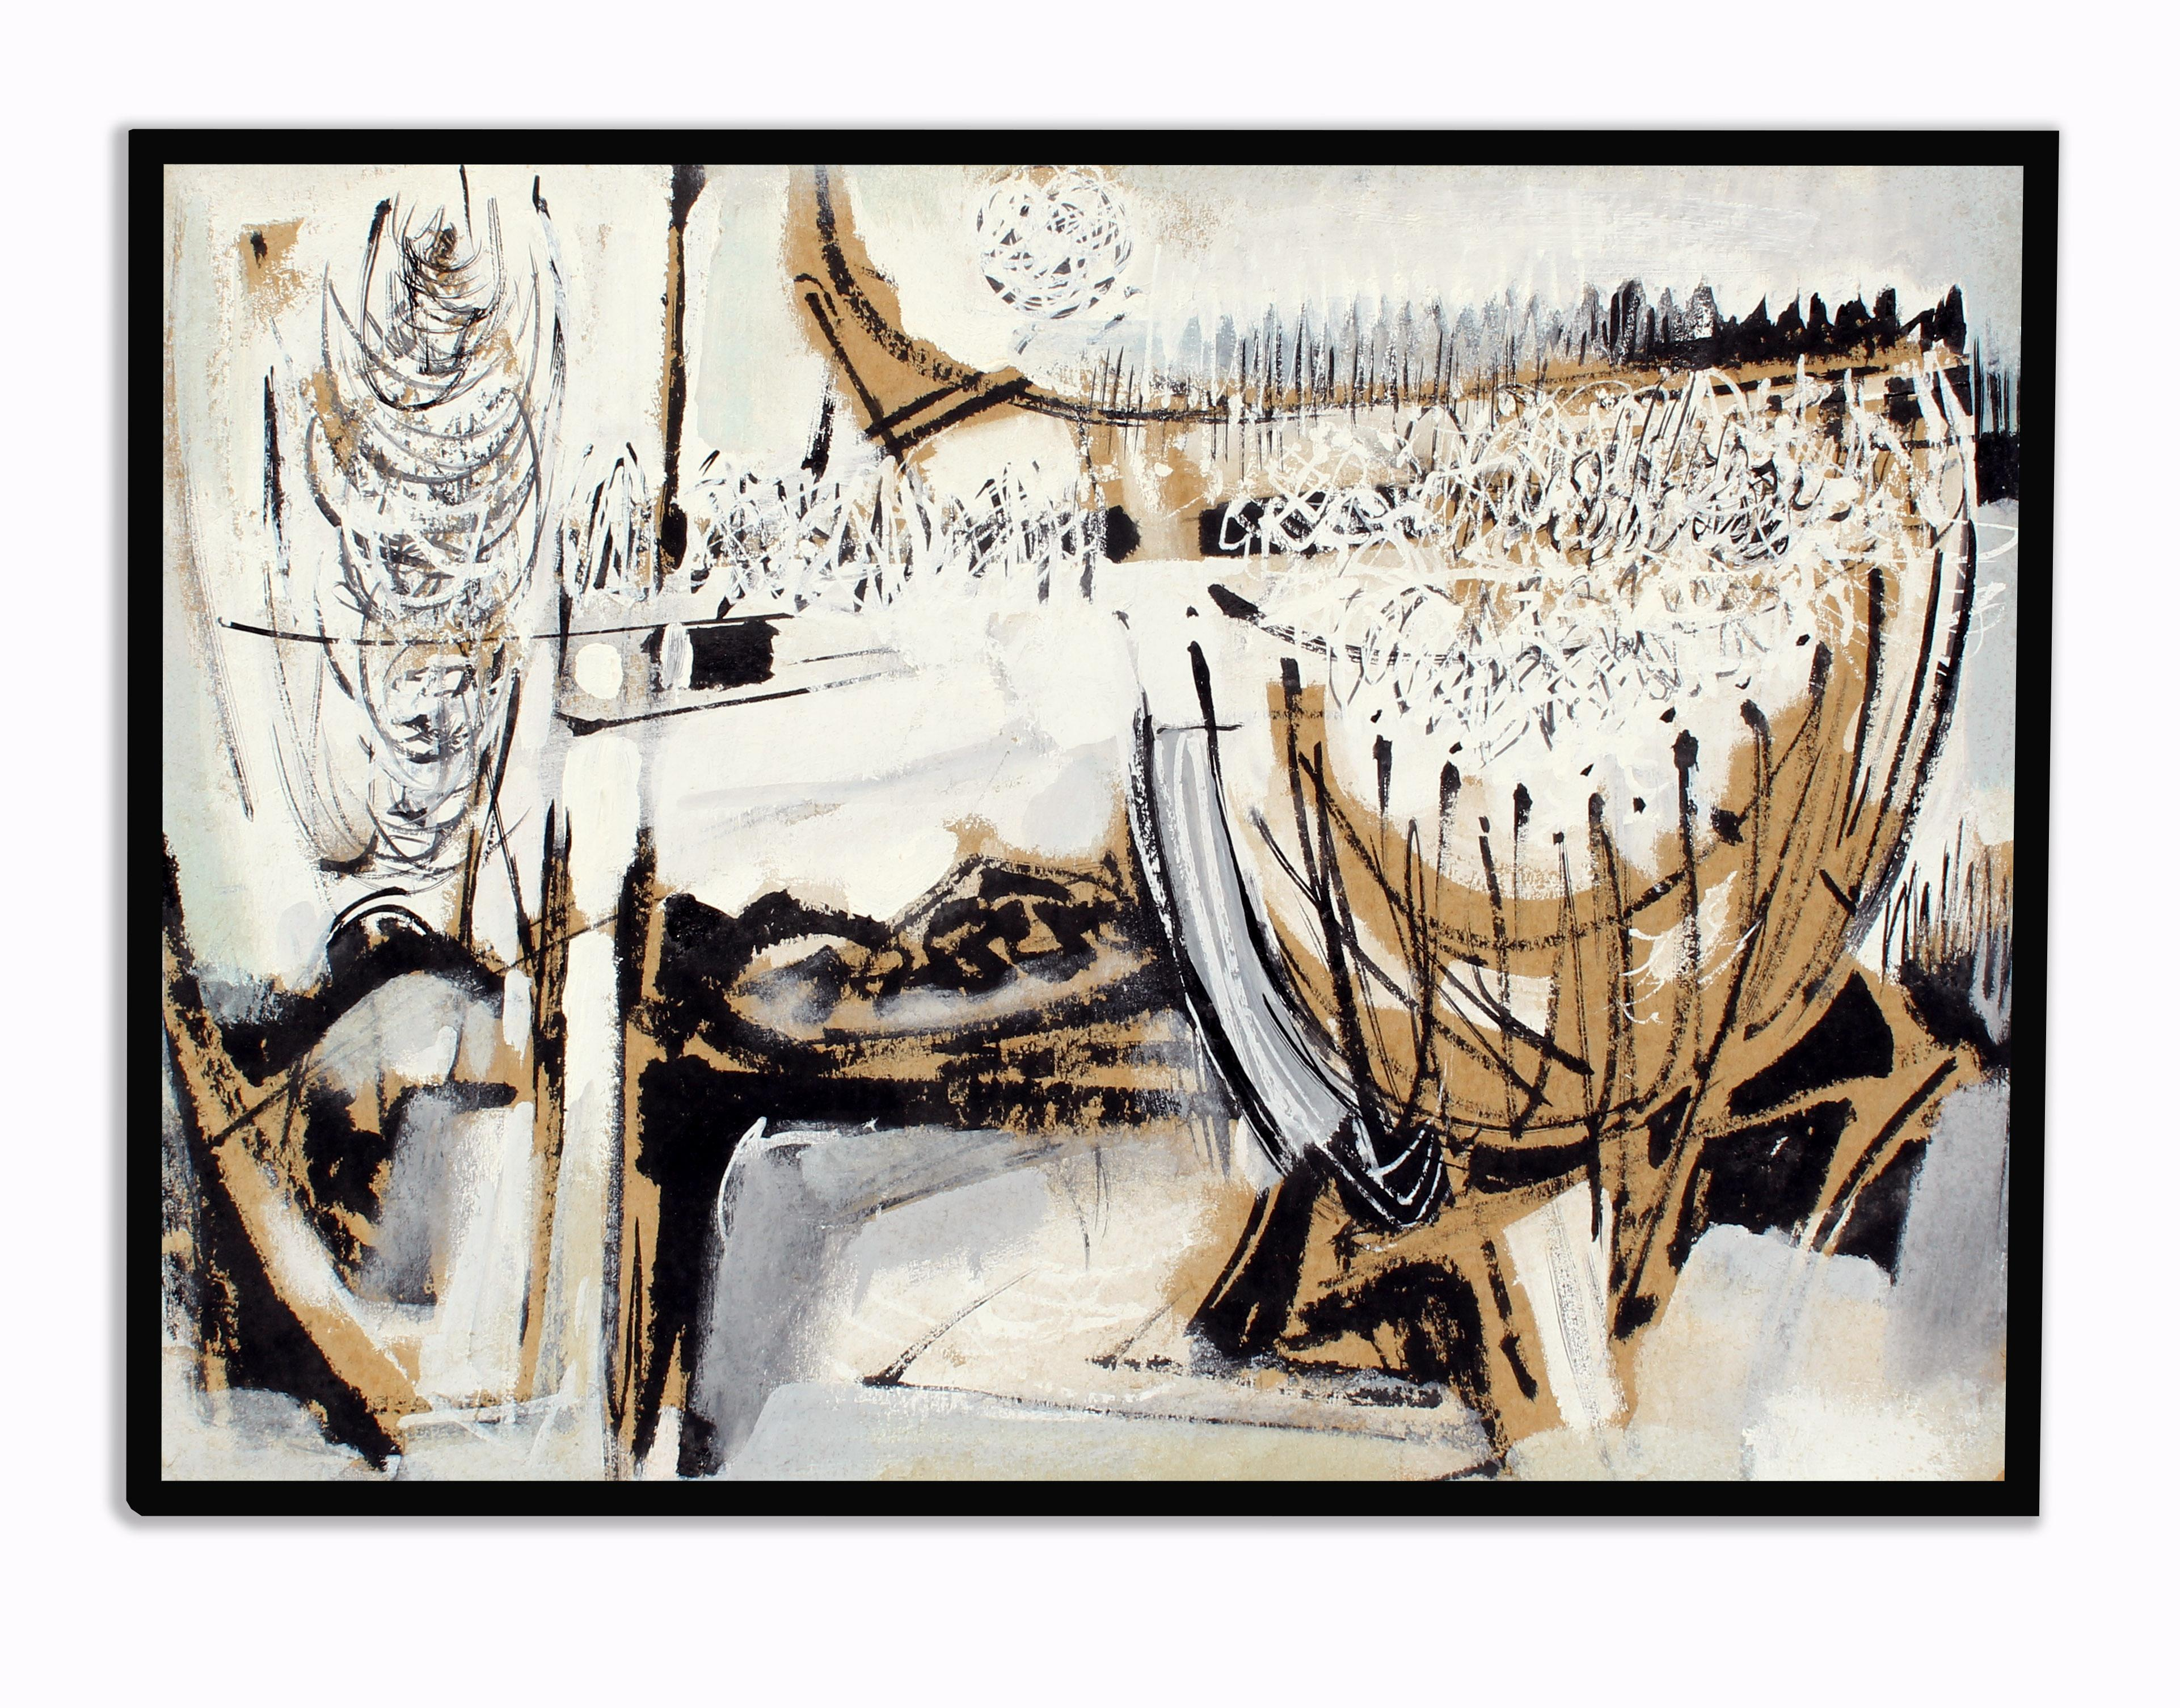 John Hatch American Cubist Abstract Oil Painting 1950's Mid C Black and White